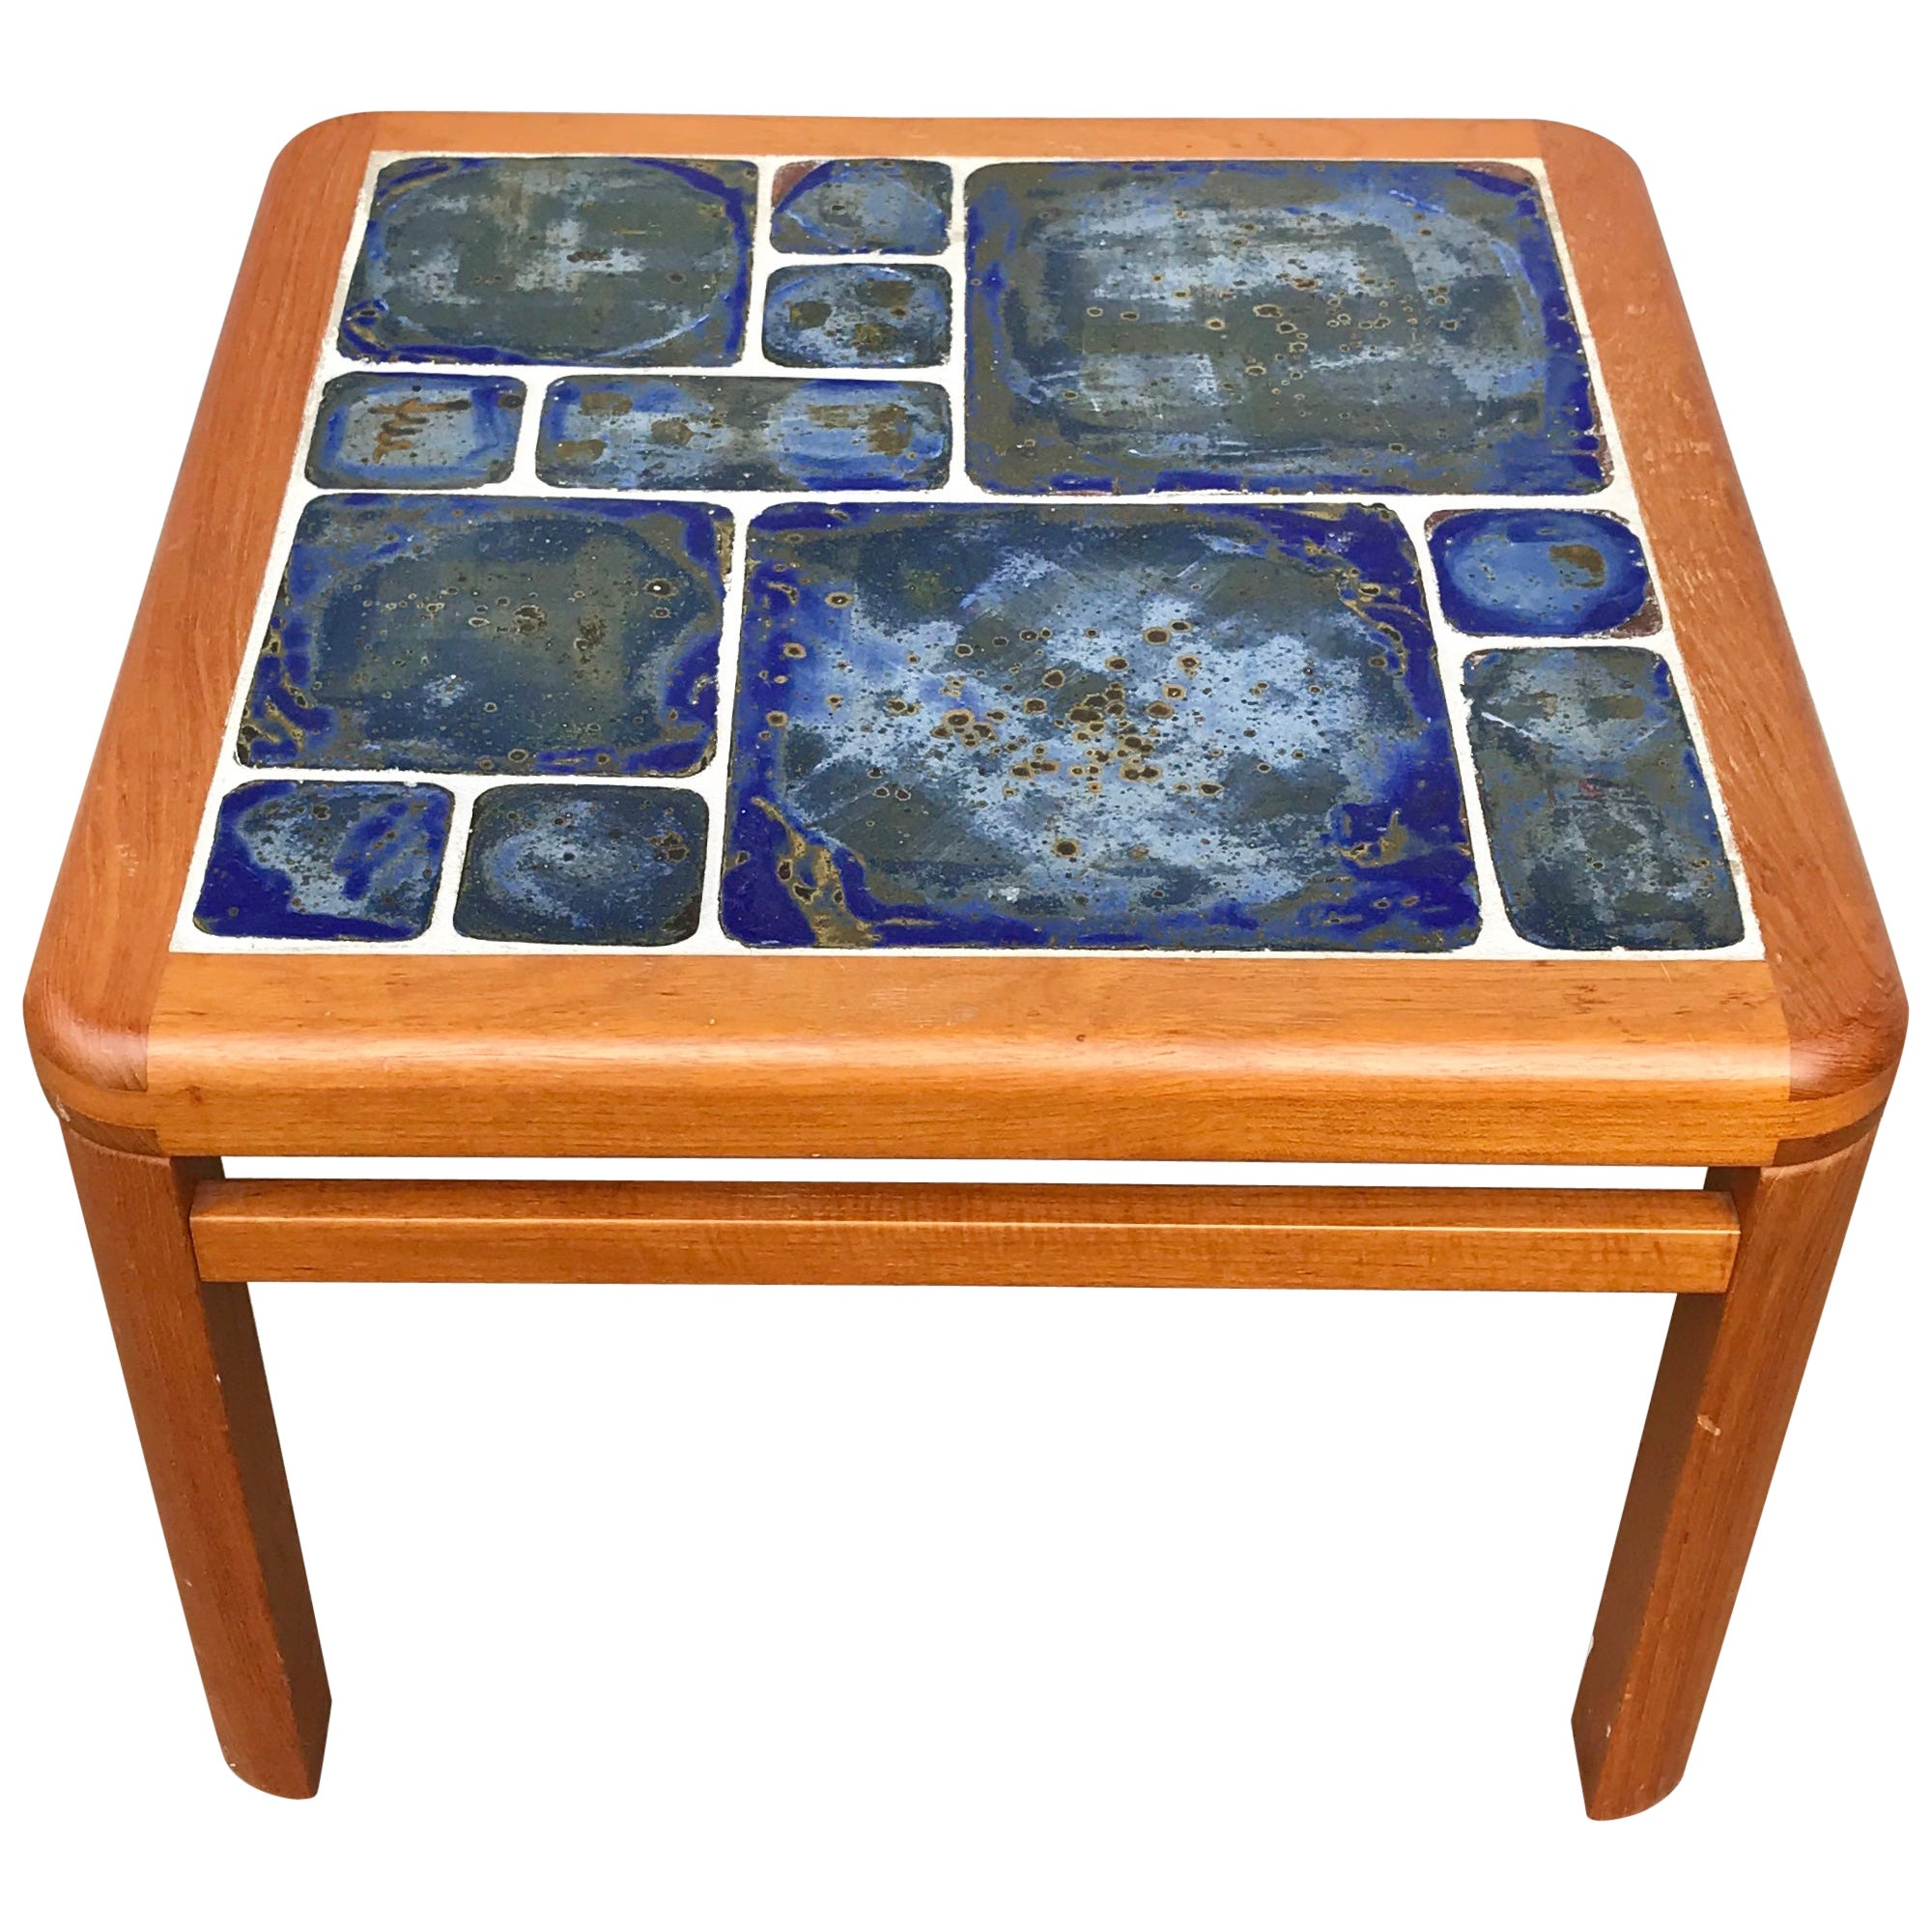 Tue Poulsen Danish Modern Hand Painted Tile Coffee Table